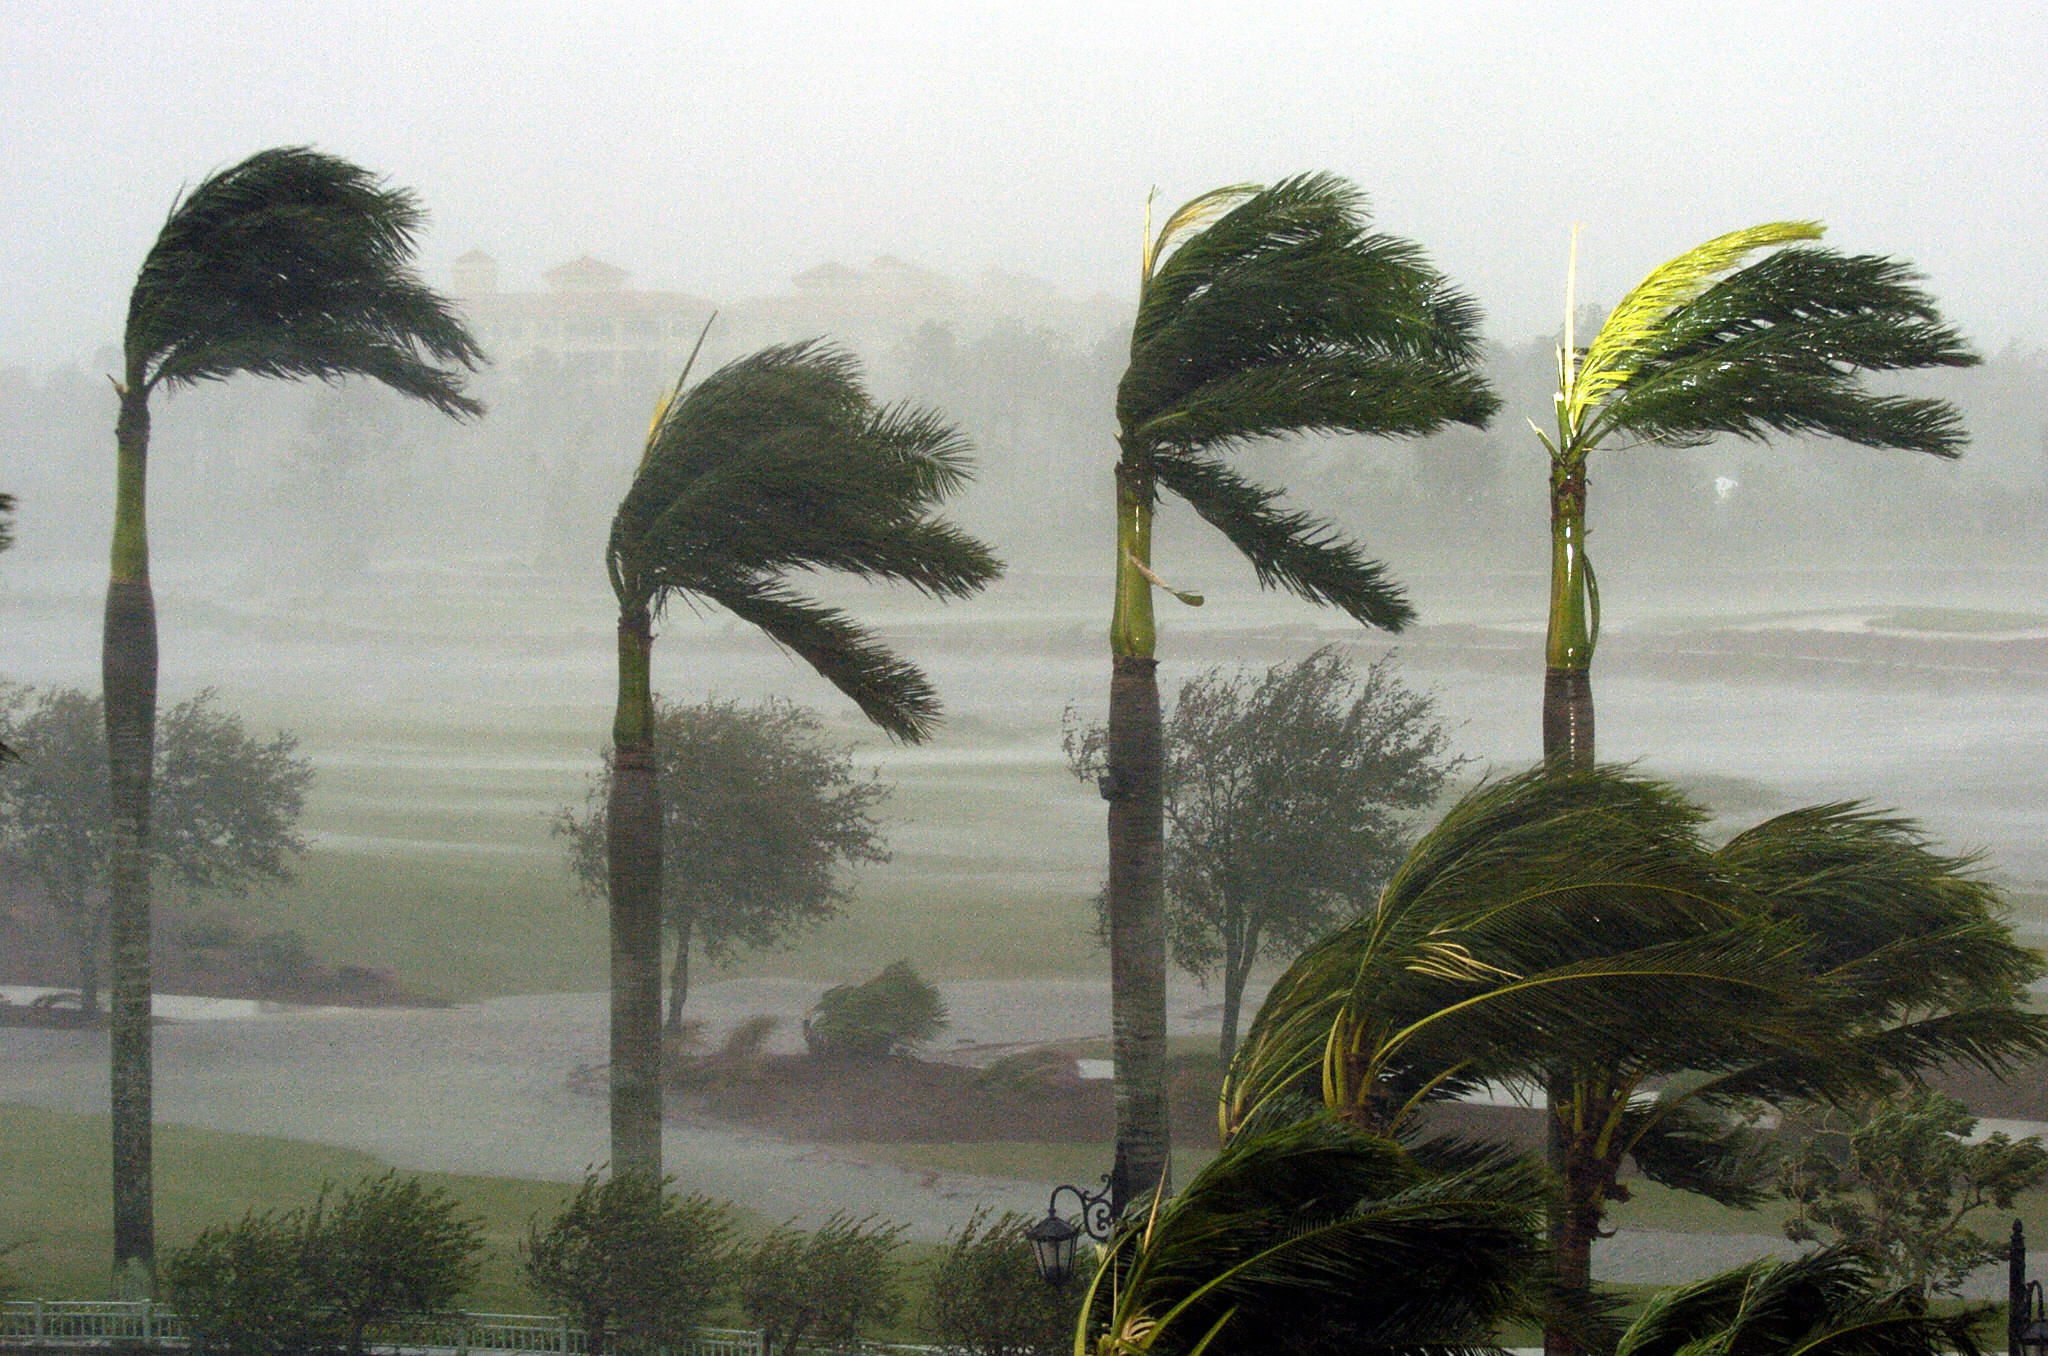 Palm trees at a hotel bend in the fierce winds as Hurricane Wilma slams into Naples, Florida on  24 Oct., 2005.